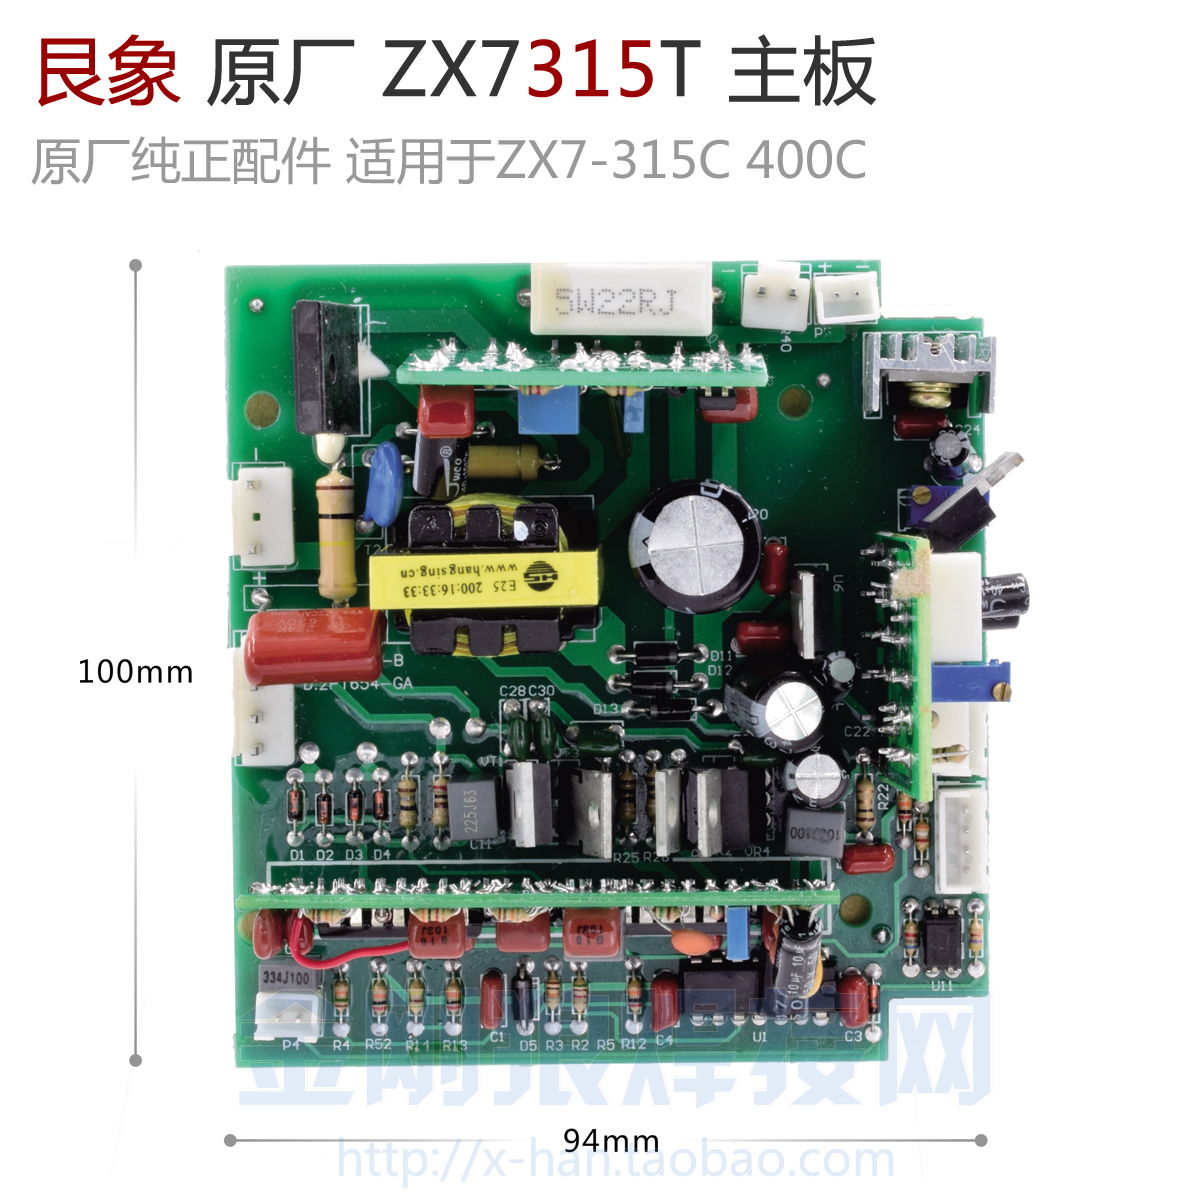 ZX7-315T 315C 400C IGBT Inverter Electric Welding Machine Auxiliary Board Control BoardZX7-315T 315C 400C IGBT Inverter Electric Welding Machine Auxiliary Board Control Board